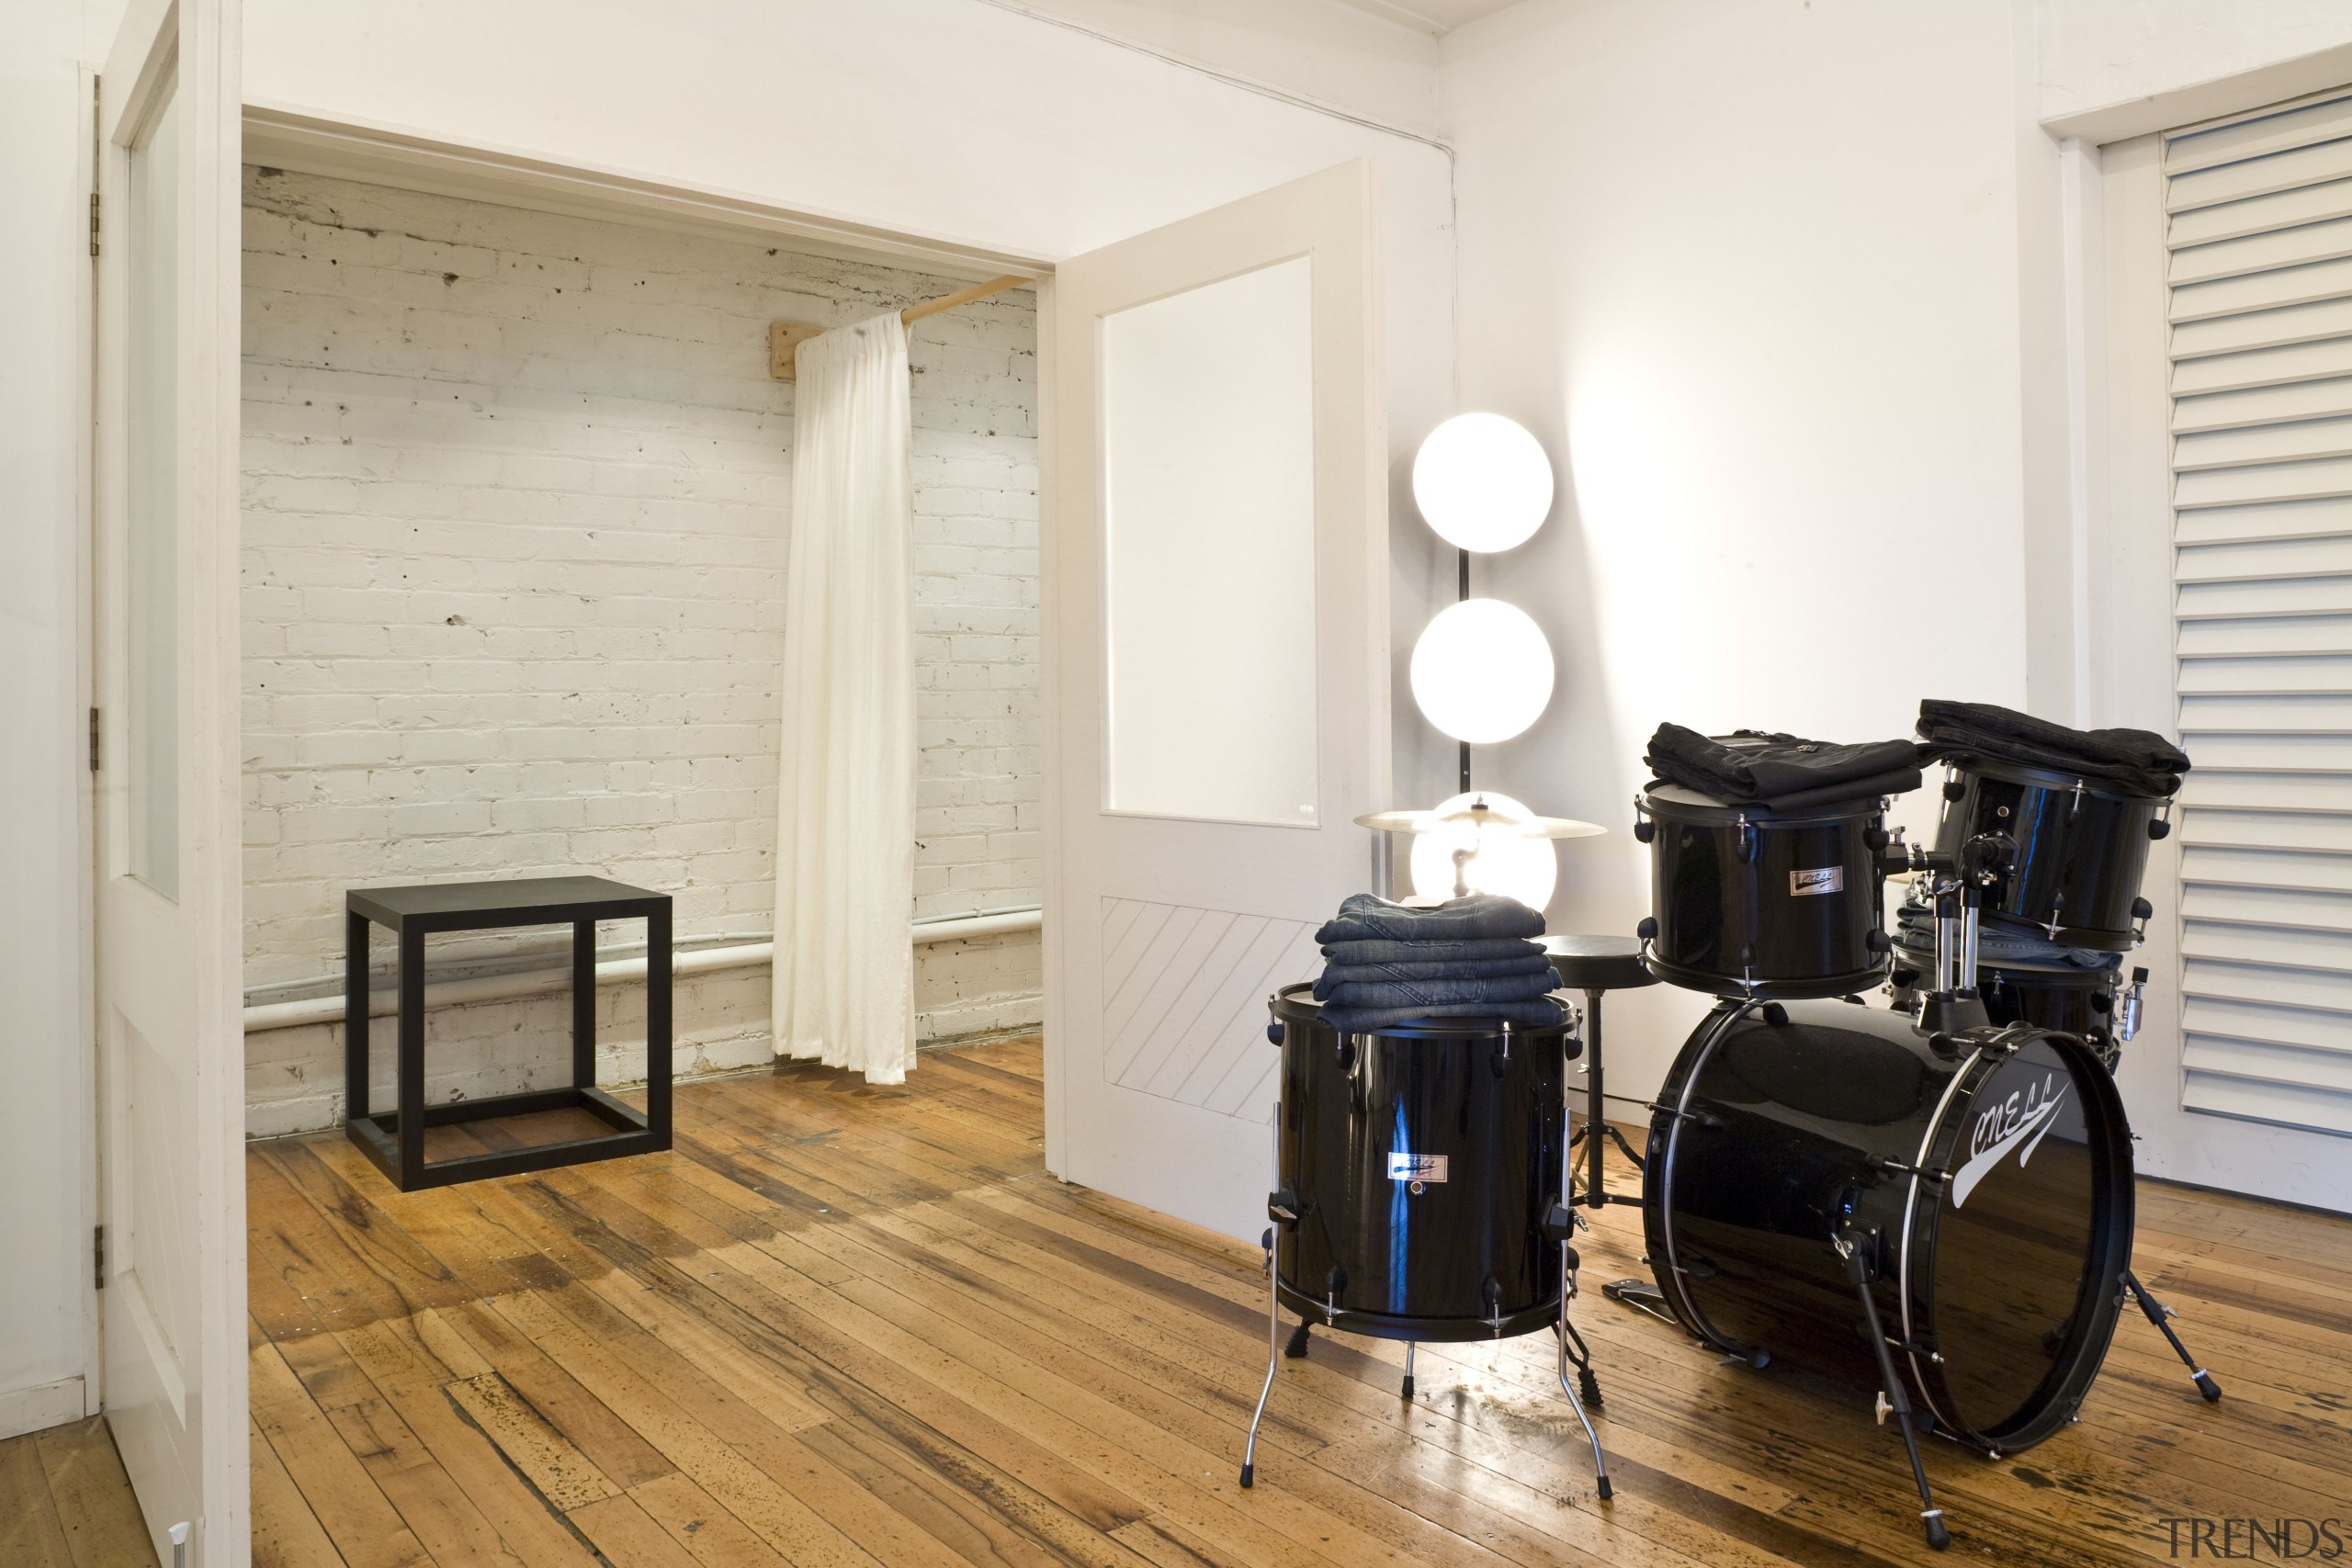 View of a drum kit which is used floor, flooring, hardwood, home, interior design, room, wood, wood flooring, white